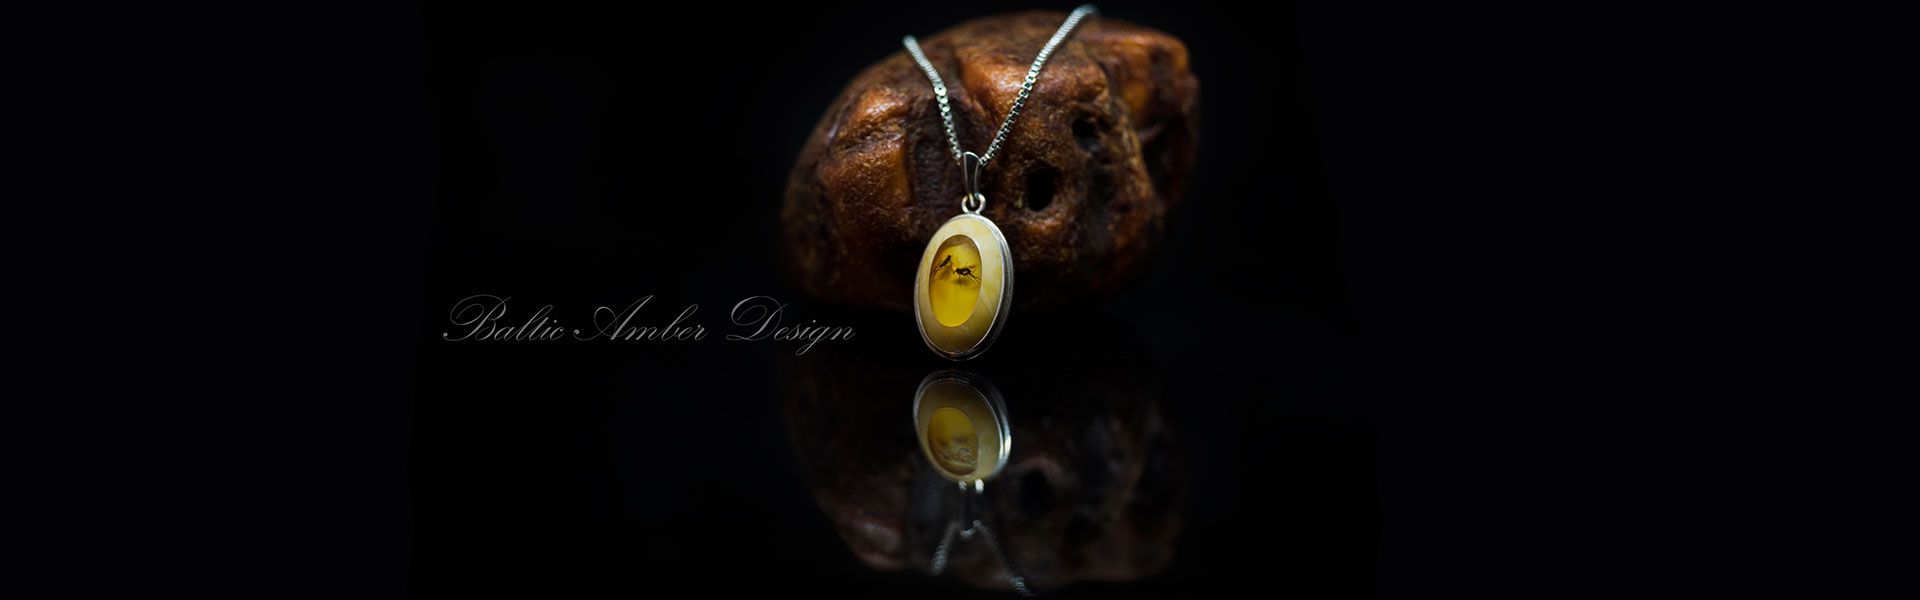 Baltic Amber Design